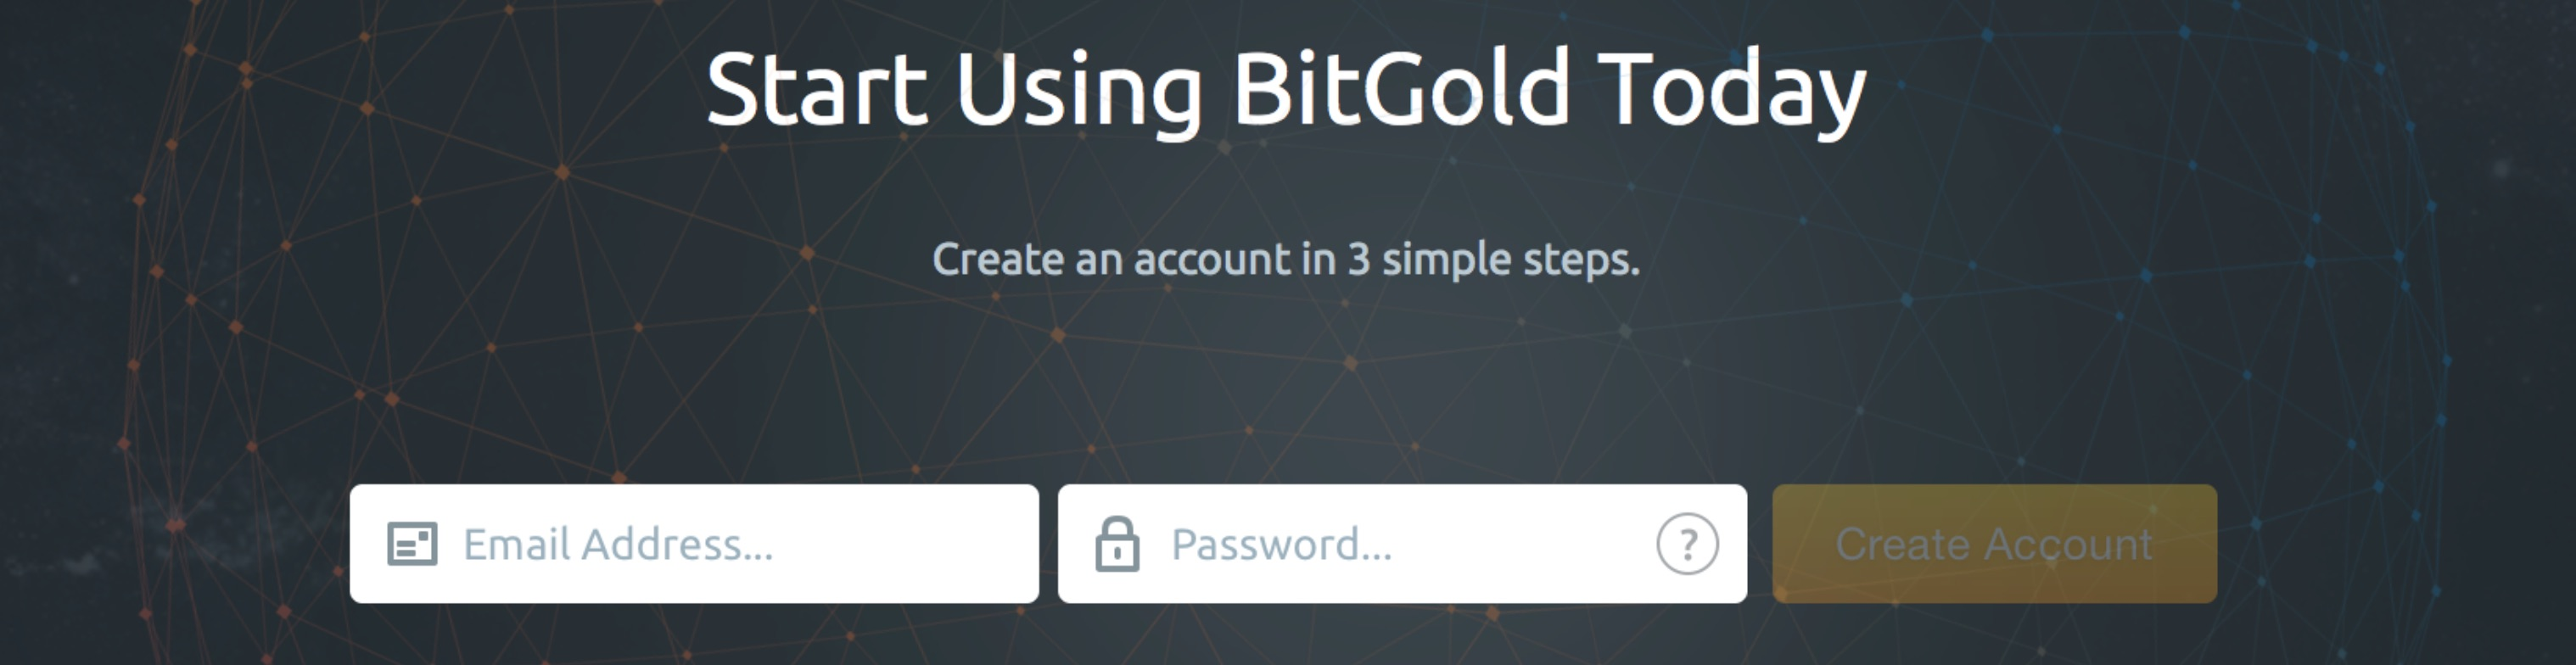 BitGold - Create Account